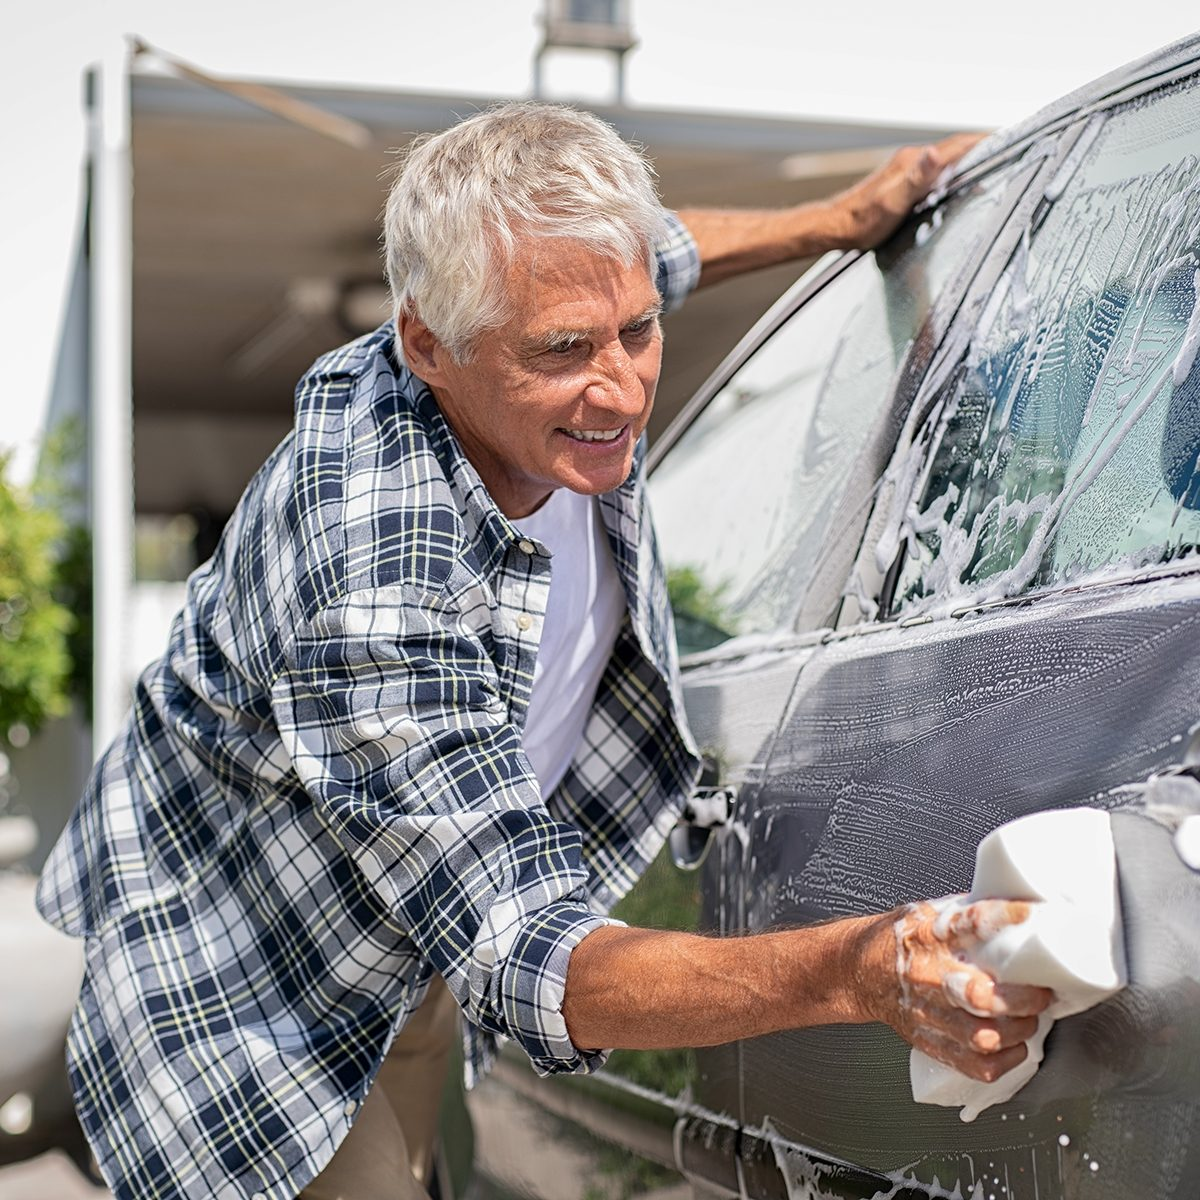 Happy senior man washing car with soap and foam. Old retired man cleaning automobile with sponge in a sunny day. Satisfied driver washing his gray car near the garage.